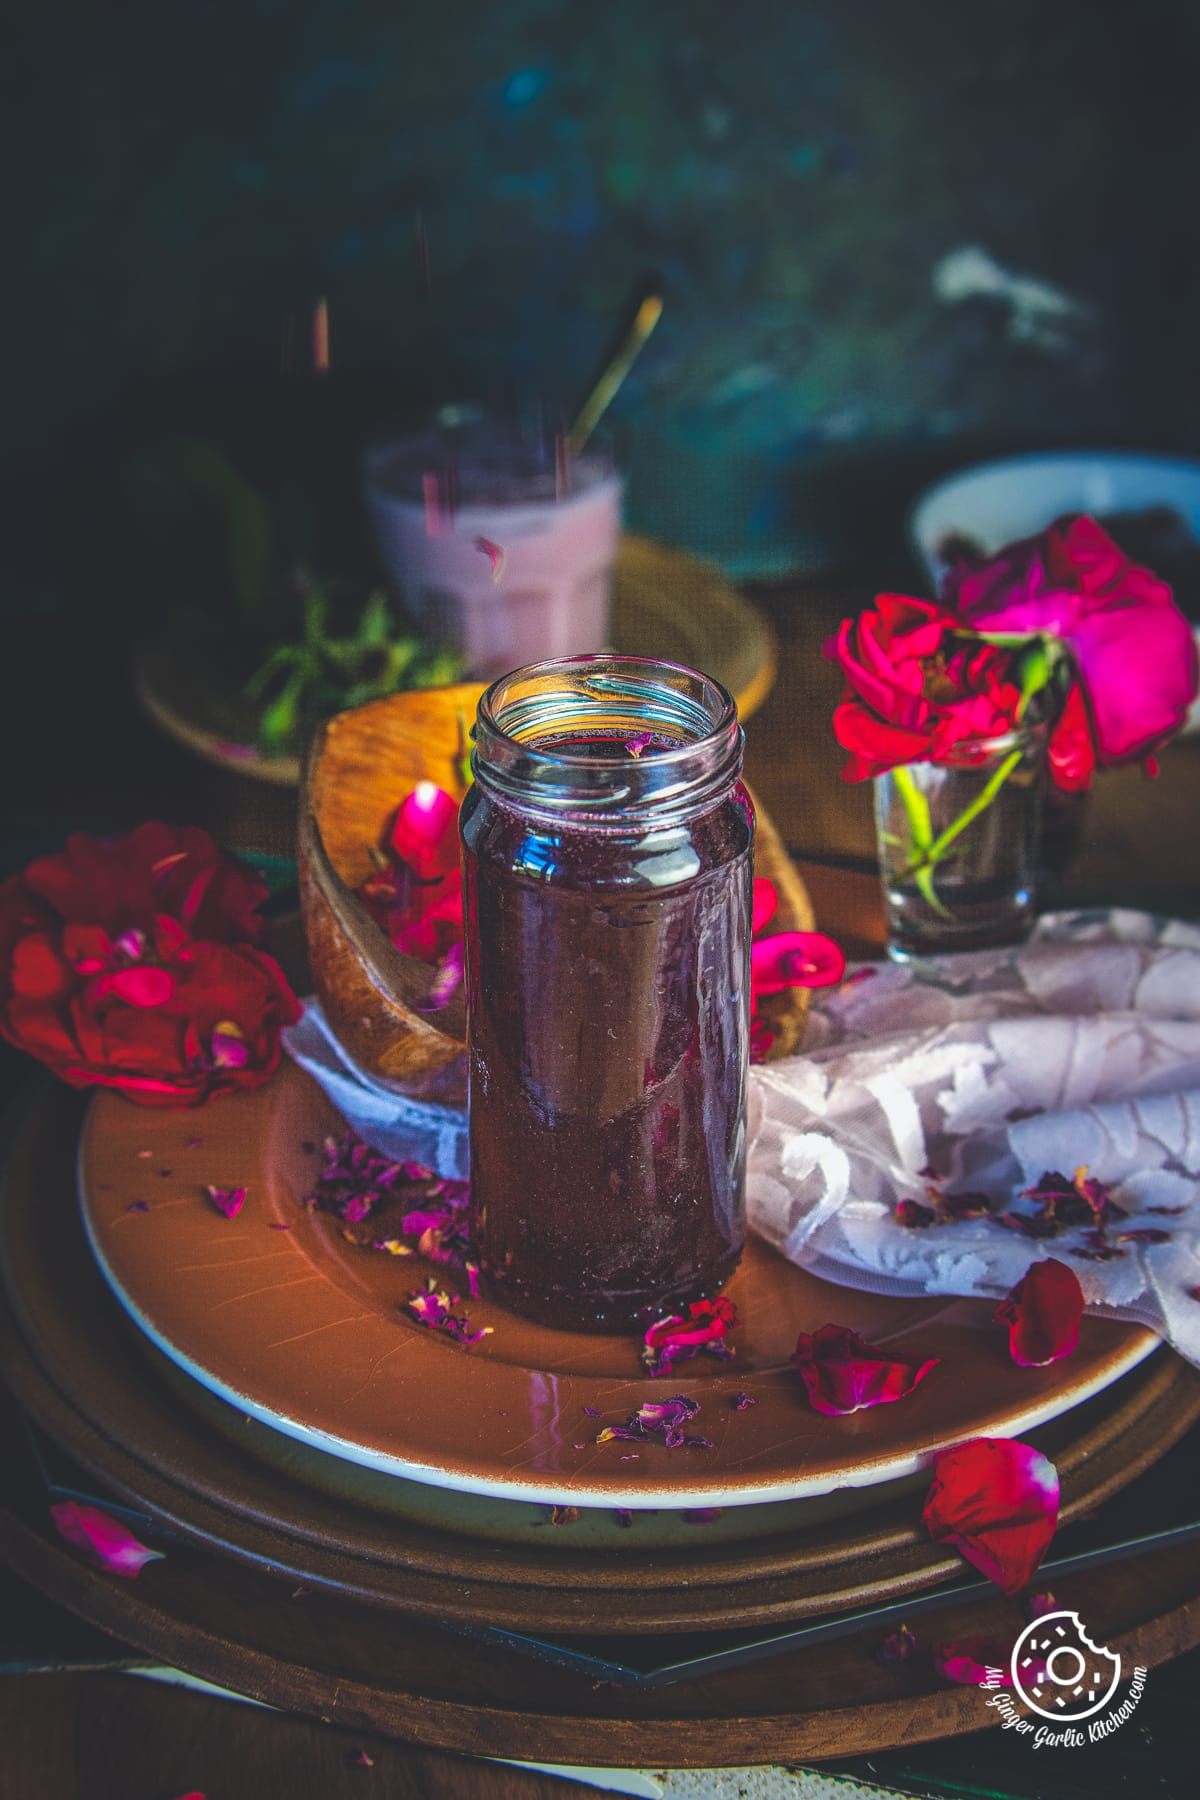 homemade rose syrup in glass bottle and fresh rose petals in background